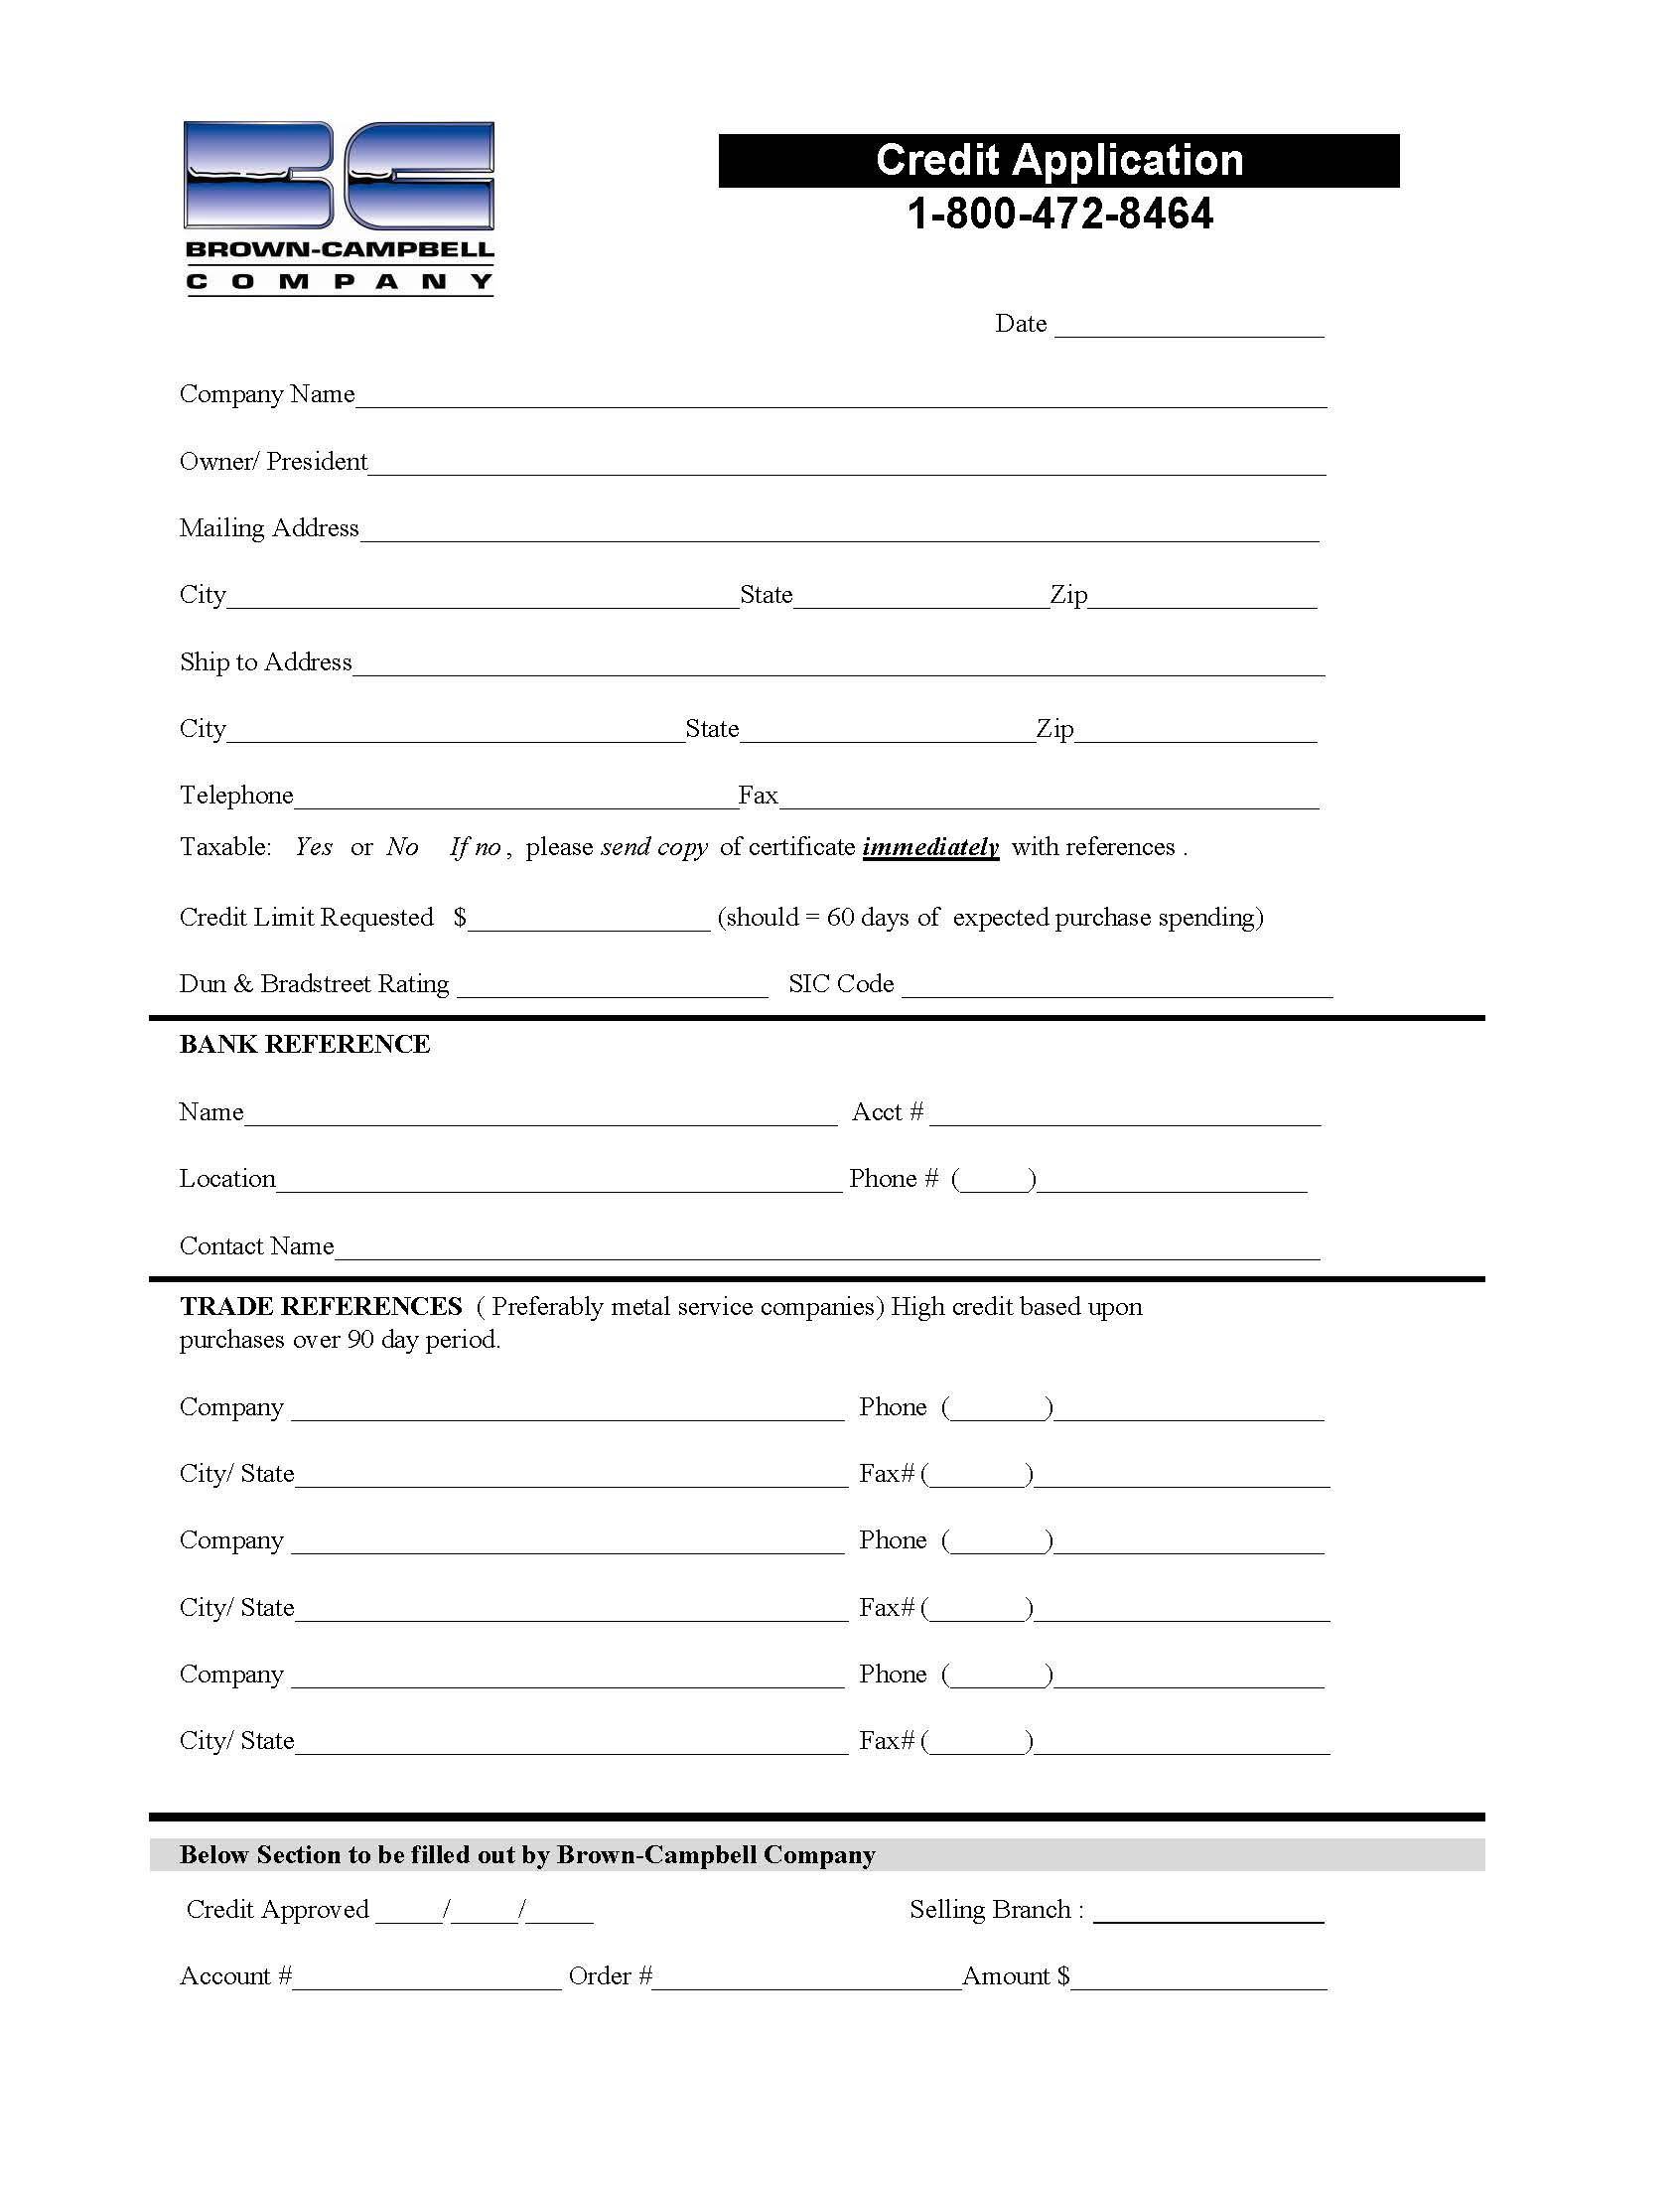 Brown-Campbell Credit Application